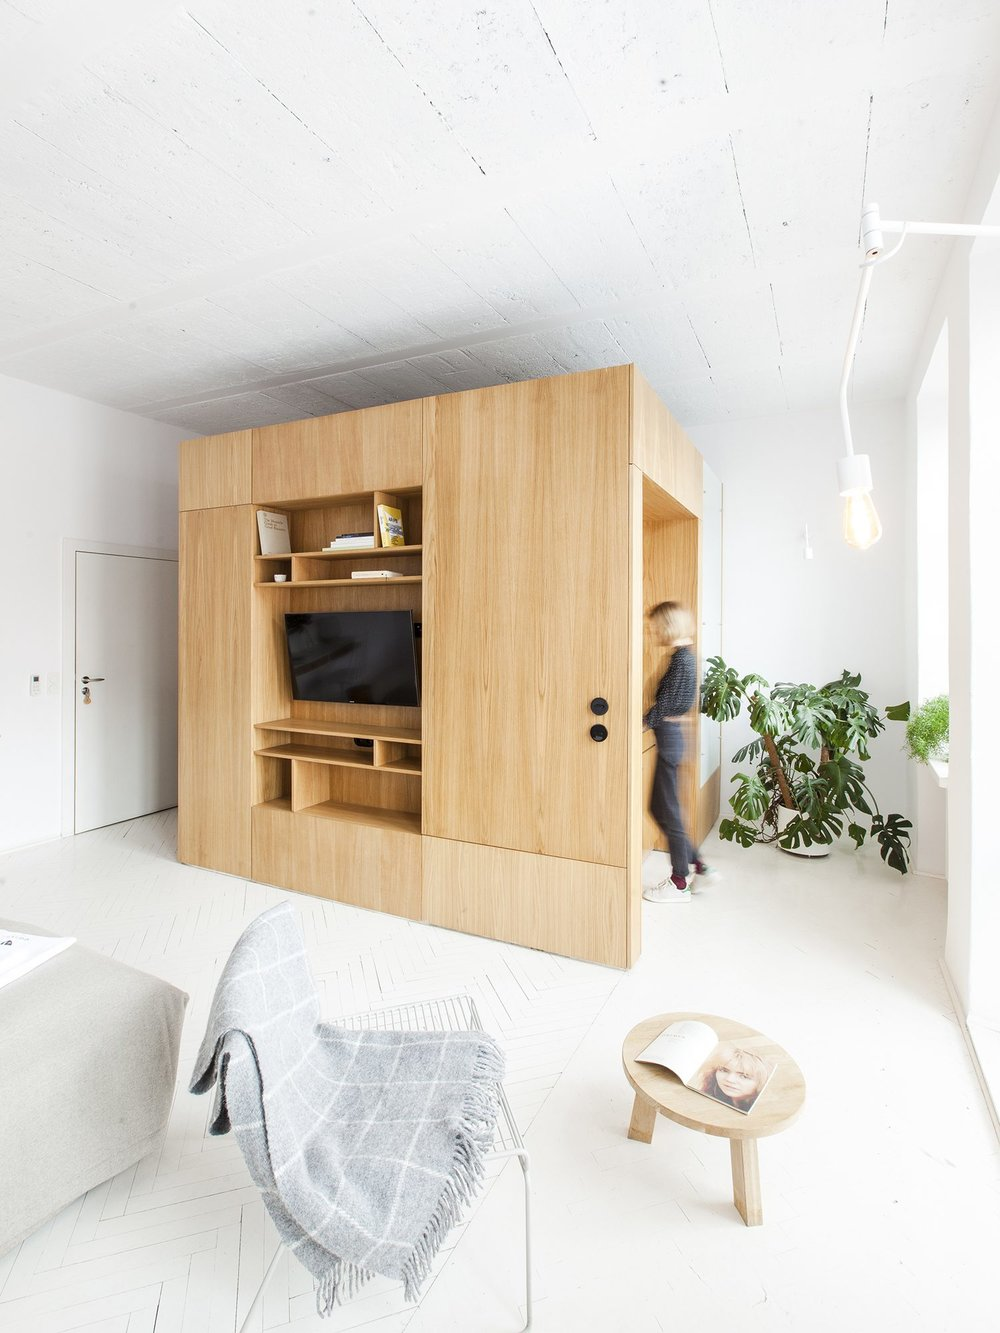 Perła Brewery Apartment designed by Projekt Praga